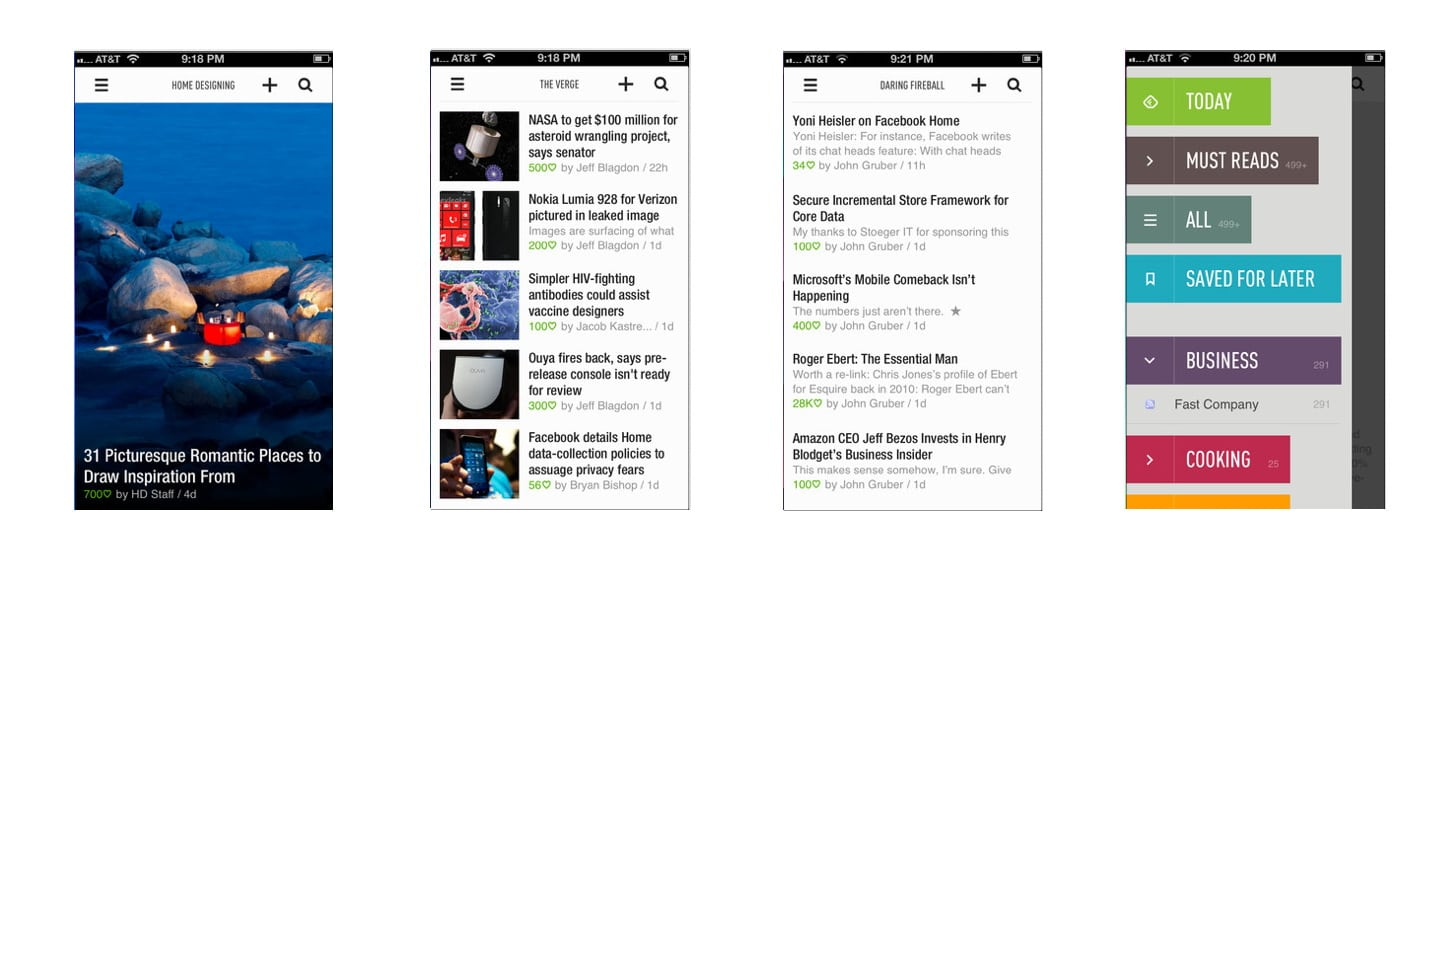 1. Collect Your News Feeds with Feedly